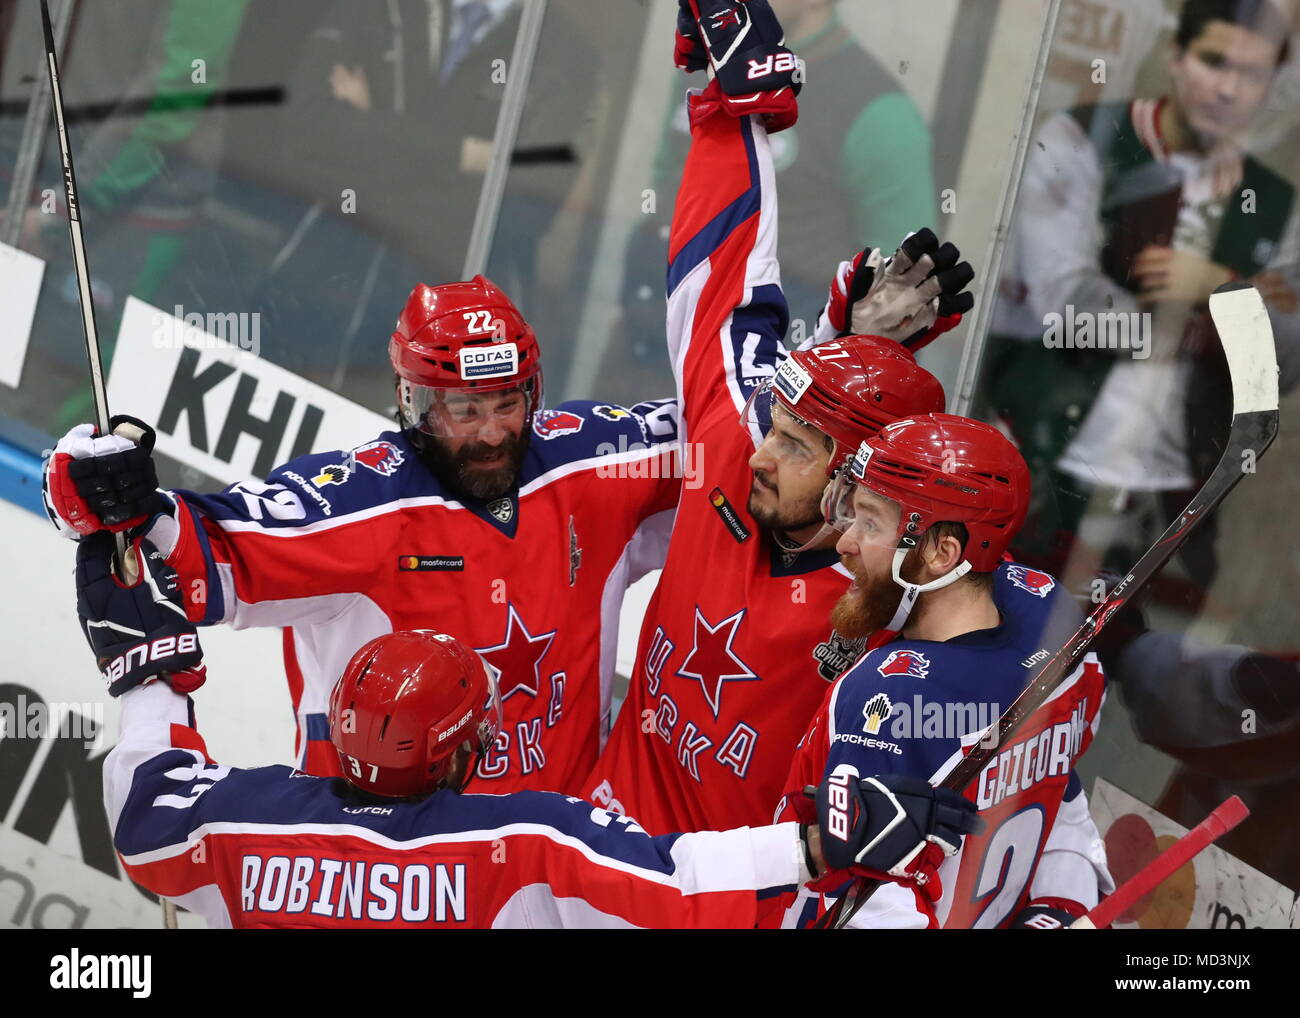 Moscow, Russia. 18th Apr, 2018. MOSCOW, RUSSIA - APRIL 18, 2018: CSKA Moscow's Alexander Popov, Kirill Petrov and Mikhail Grigorenko (L-R) celebrate victory in Leg 3 of the 2017/2018 Kontinental Hockey League Gagarin Cup final against Ak Bars Kazan at CSKA Ice Palace. HC CSKA Moscow won the game 3-2 in extra time. Stanislav Krasilnikov/TASS Credit: ITAR-TASS News Agency/Alamy Live News - Stock Image